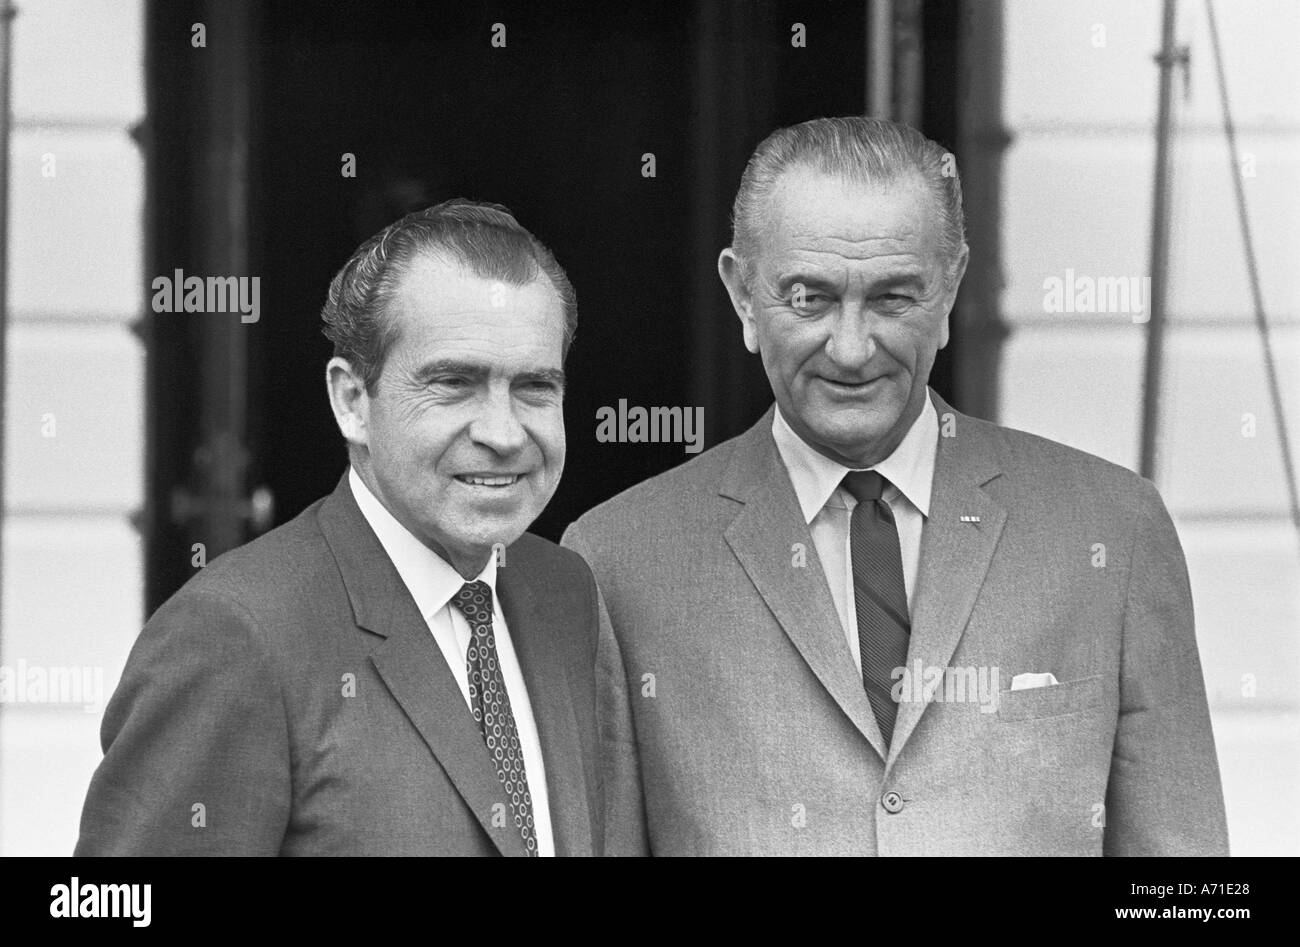 President Richard M Nixon with President Lyndon Baines Johnson at the South Portico of the White House  - Stock Image